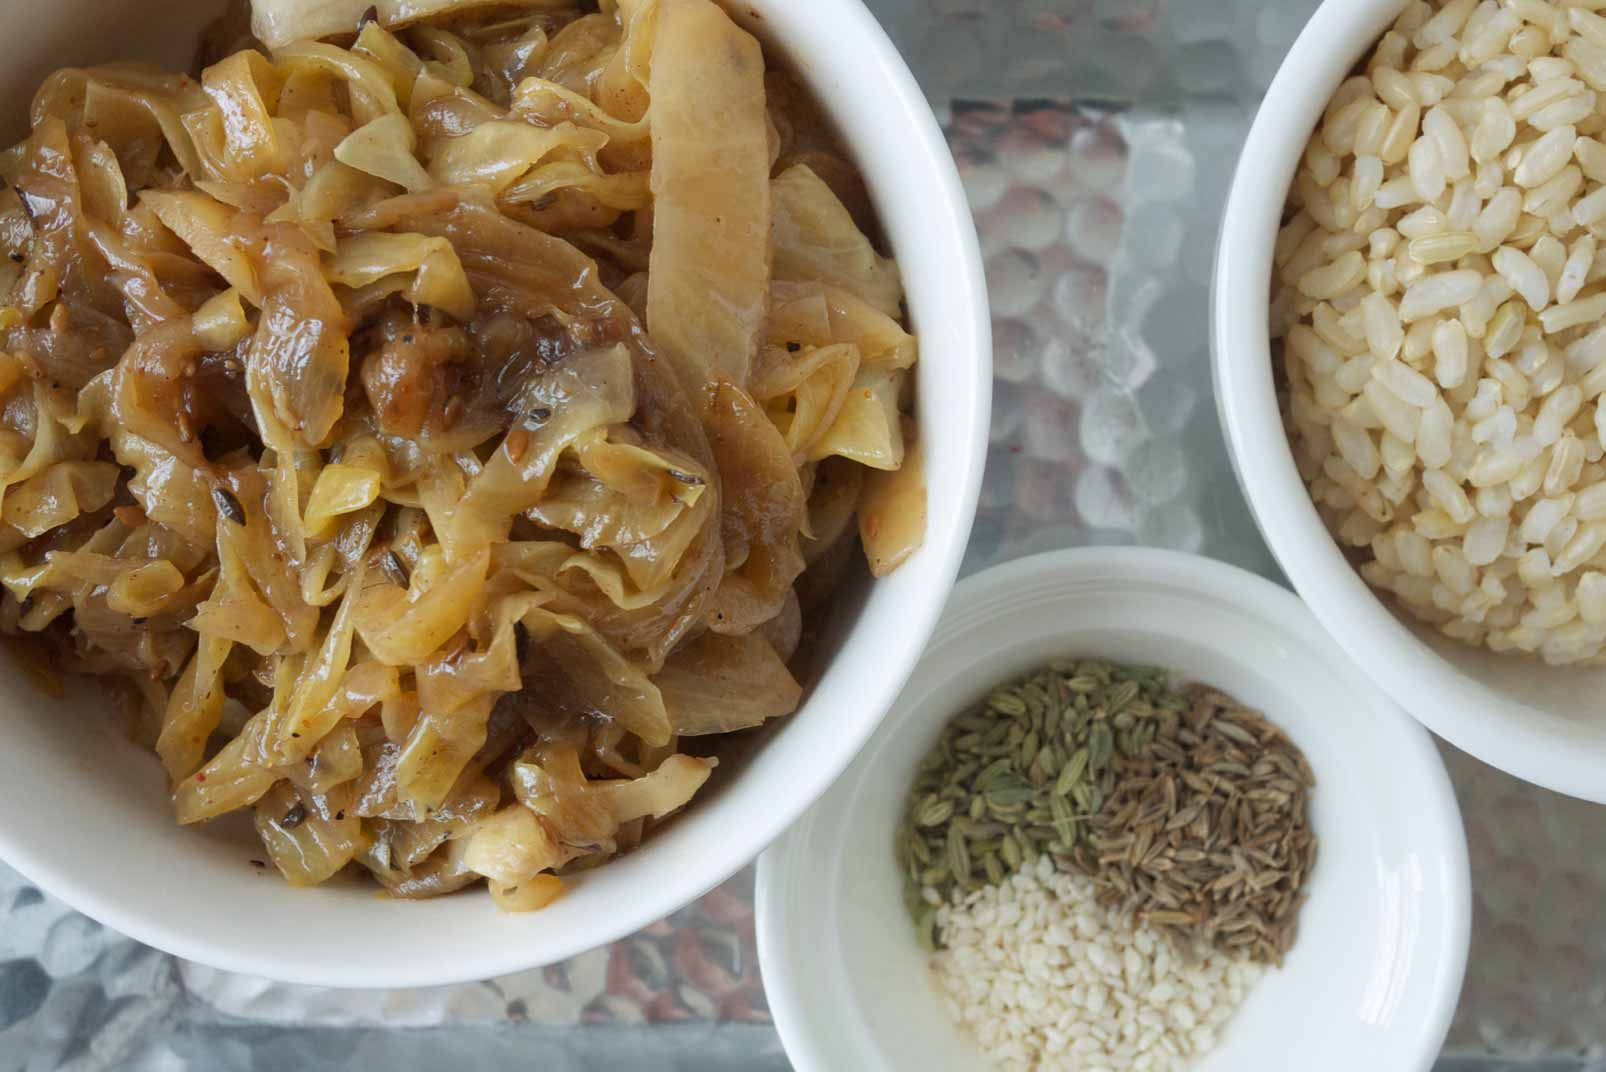 Stir-Fried Cabbage with Fennel, Cumin, and Sesame Seeds